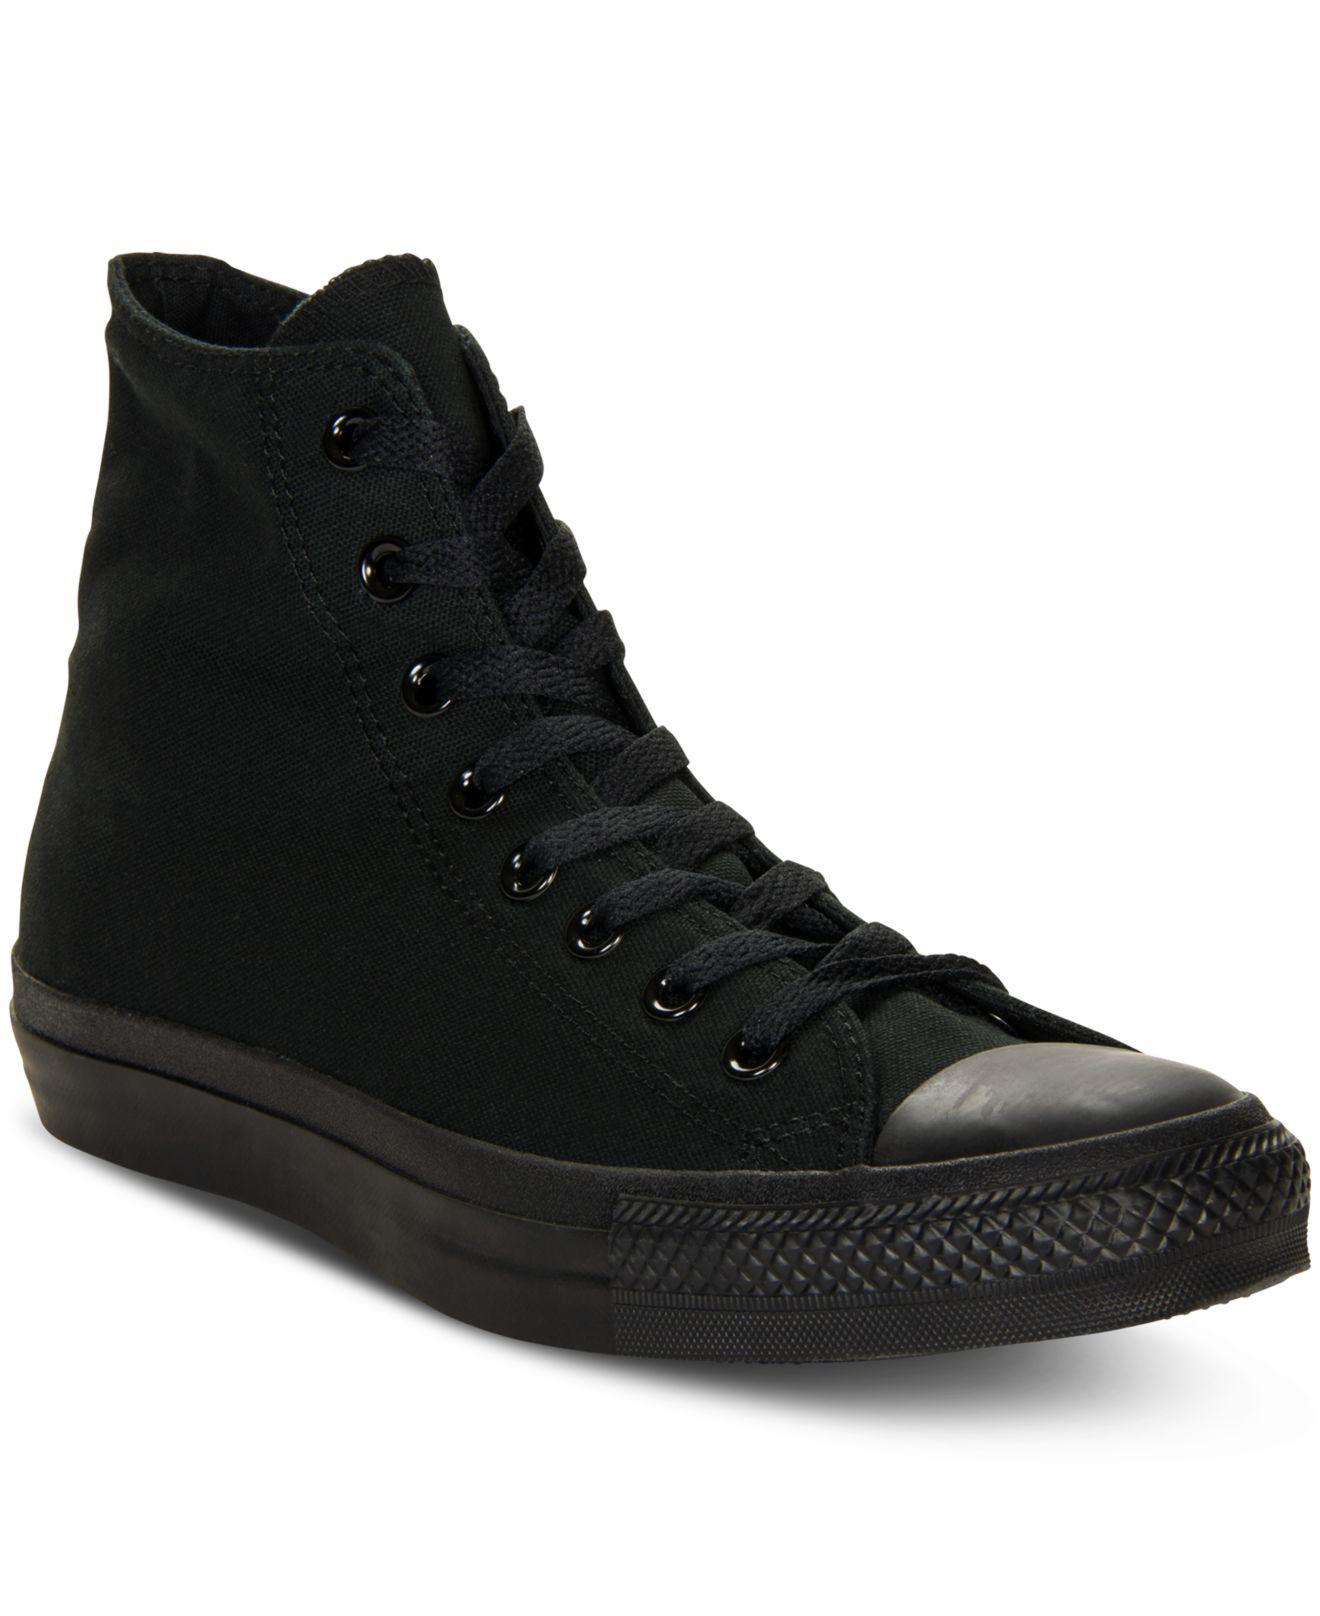 372e1003bdee Lyst - Converse Monochrome Chuck Taylor Hi Tops in Black for Men ...